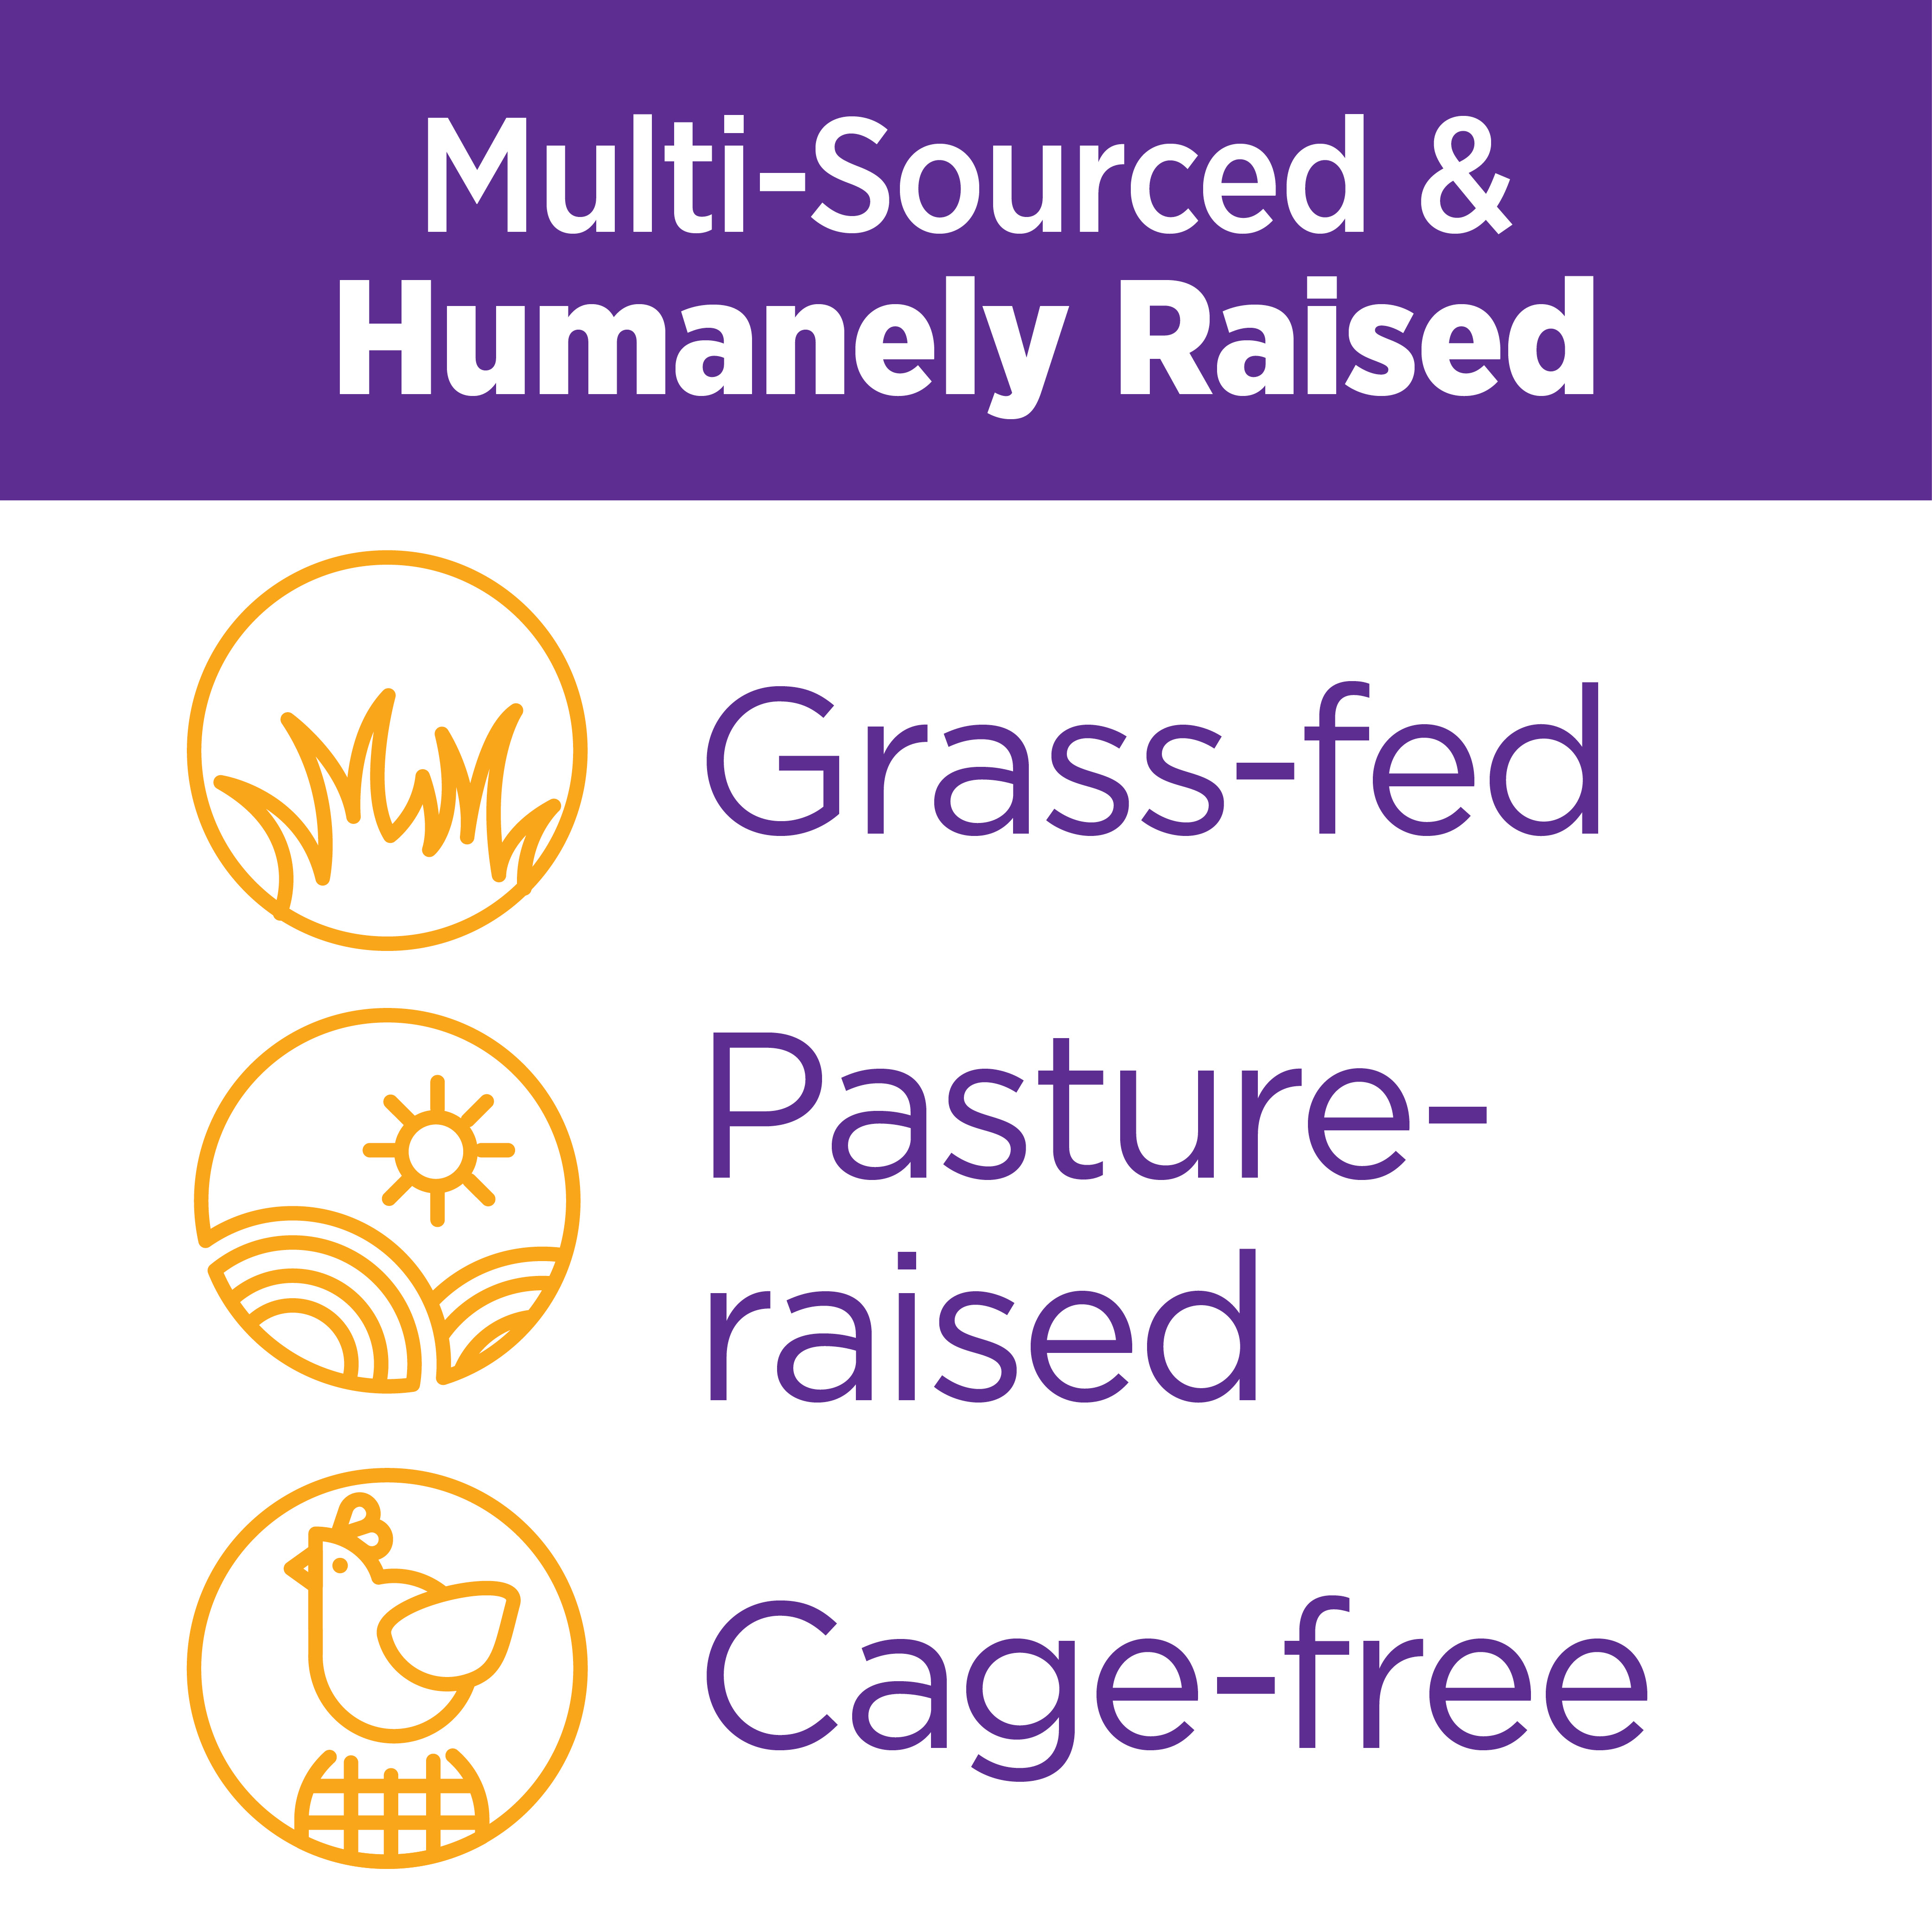 Multi-Sourced & Humanely Raised: Grass-fed, Pasture-raised, Cage-free.